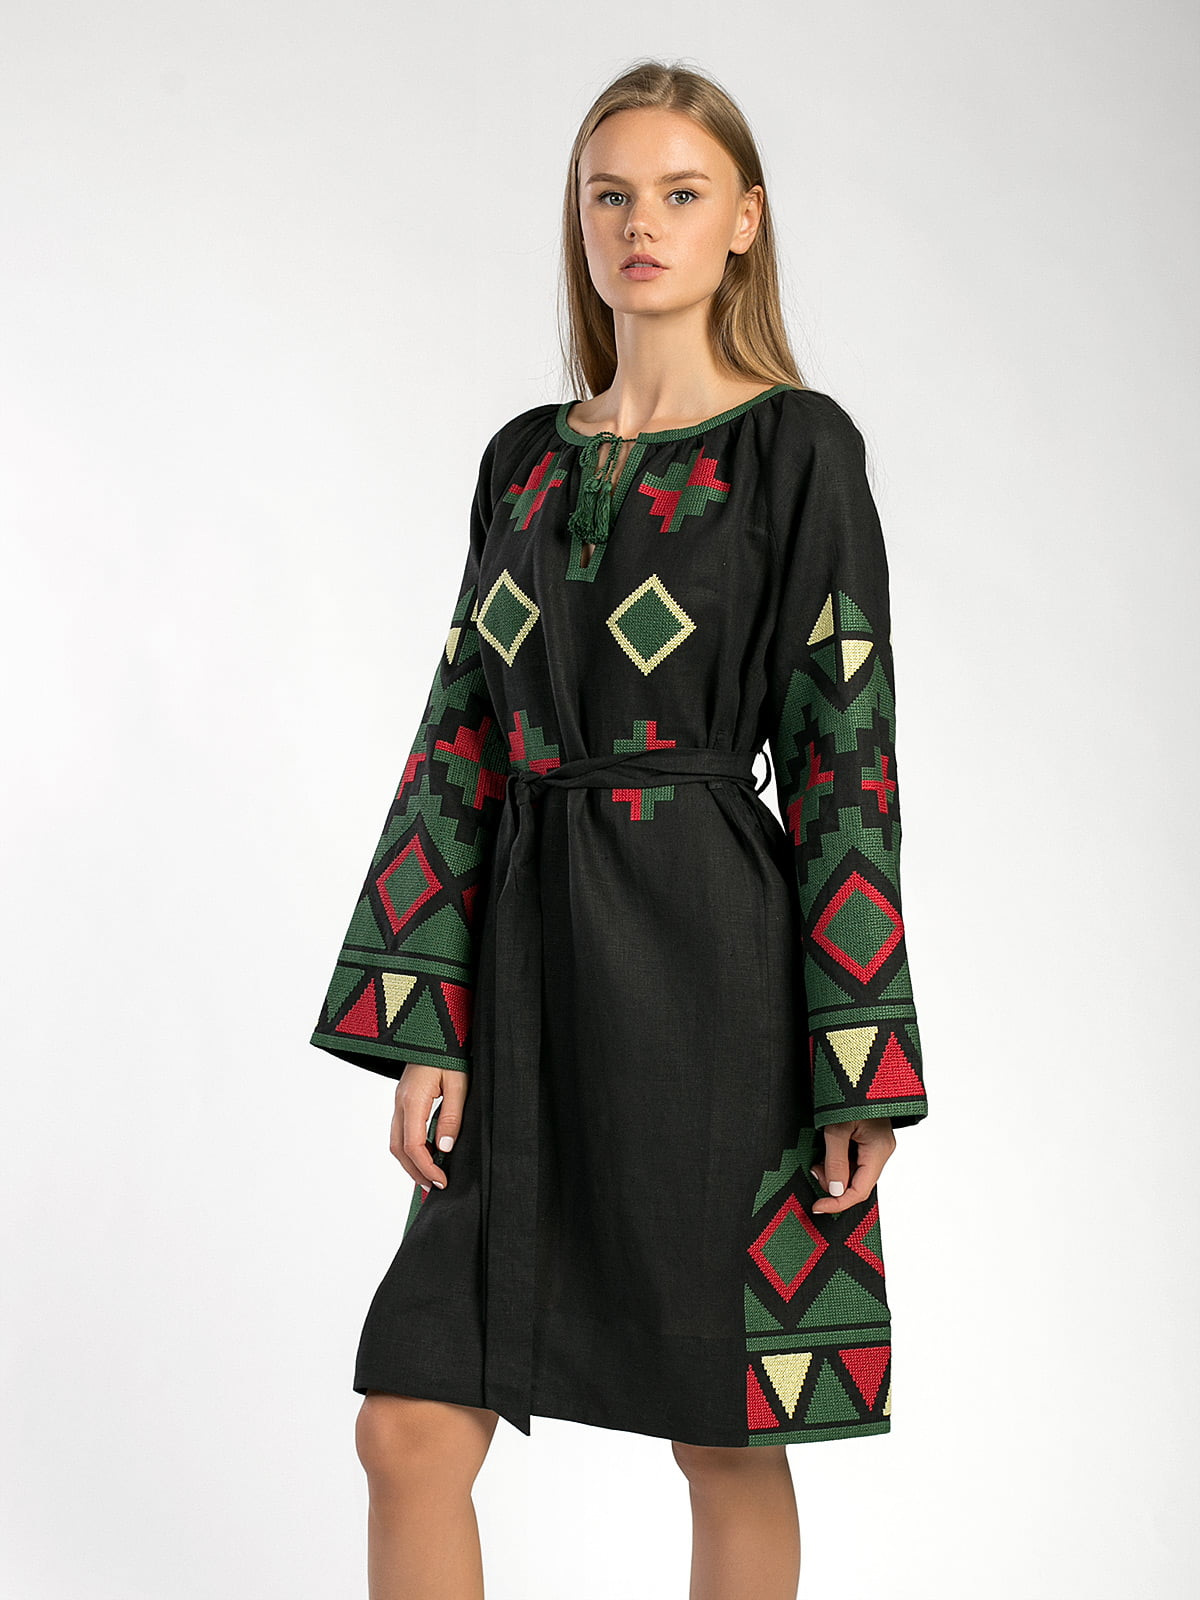 Black free-cut dress with massive embroidery ETHNO8 Black